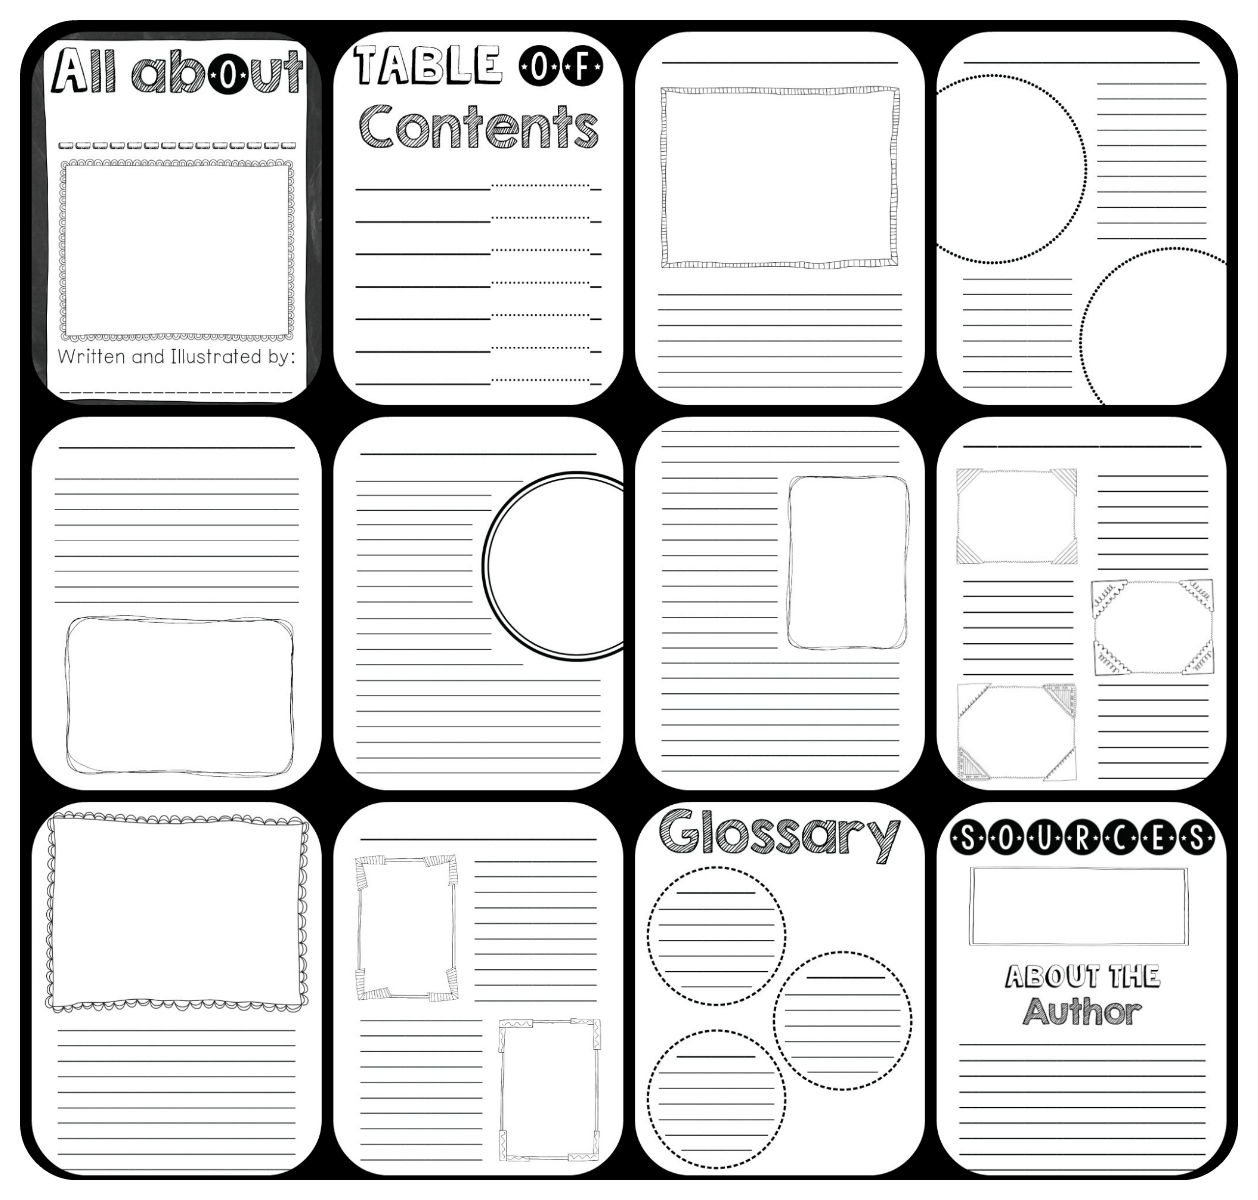 Nonfiction Book template for kids to create their own